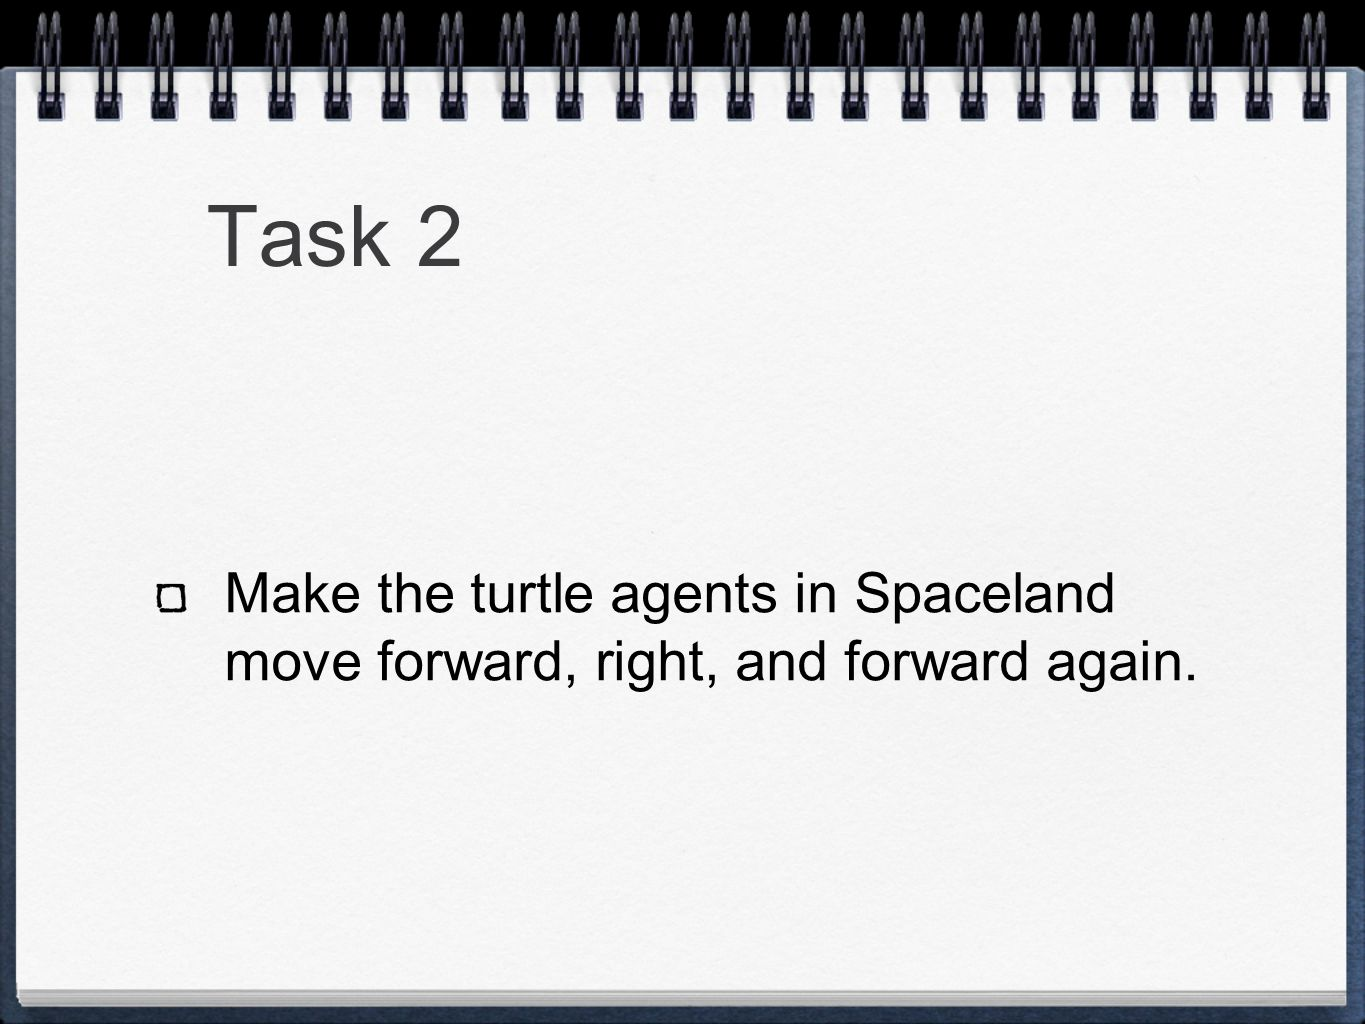 Task 2 Make the turtle agents in Spaceland move forward, right, and forward again.